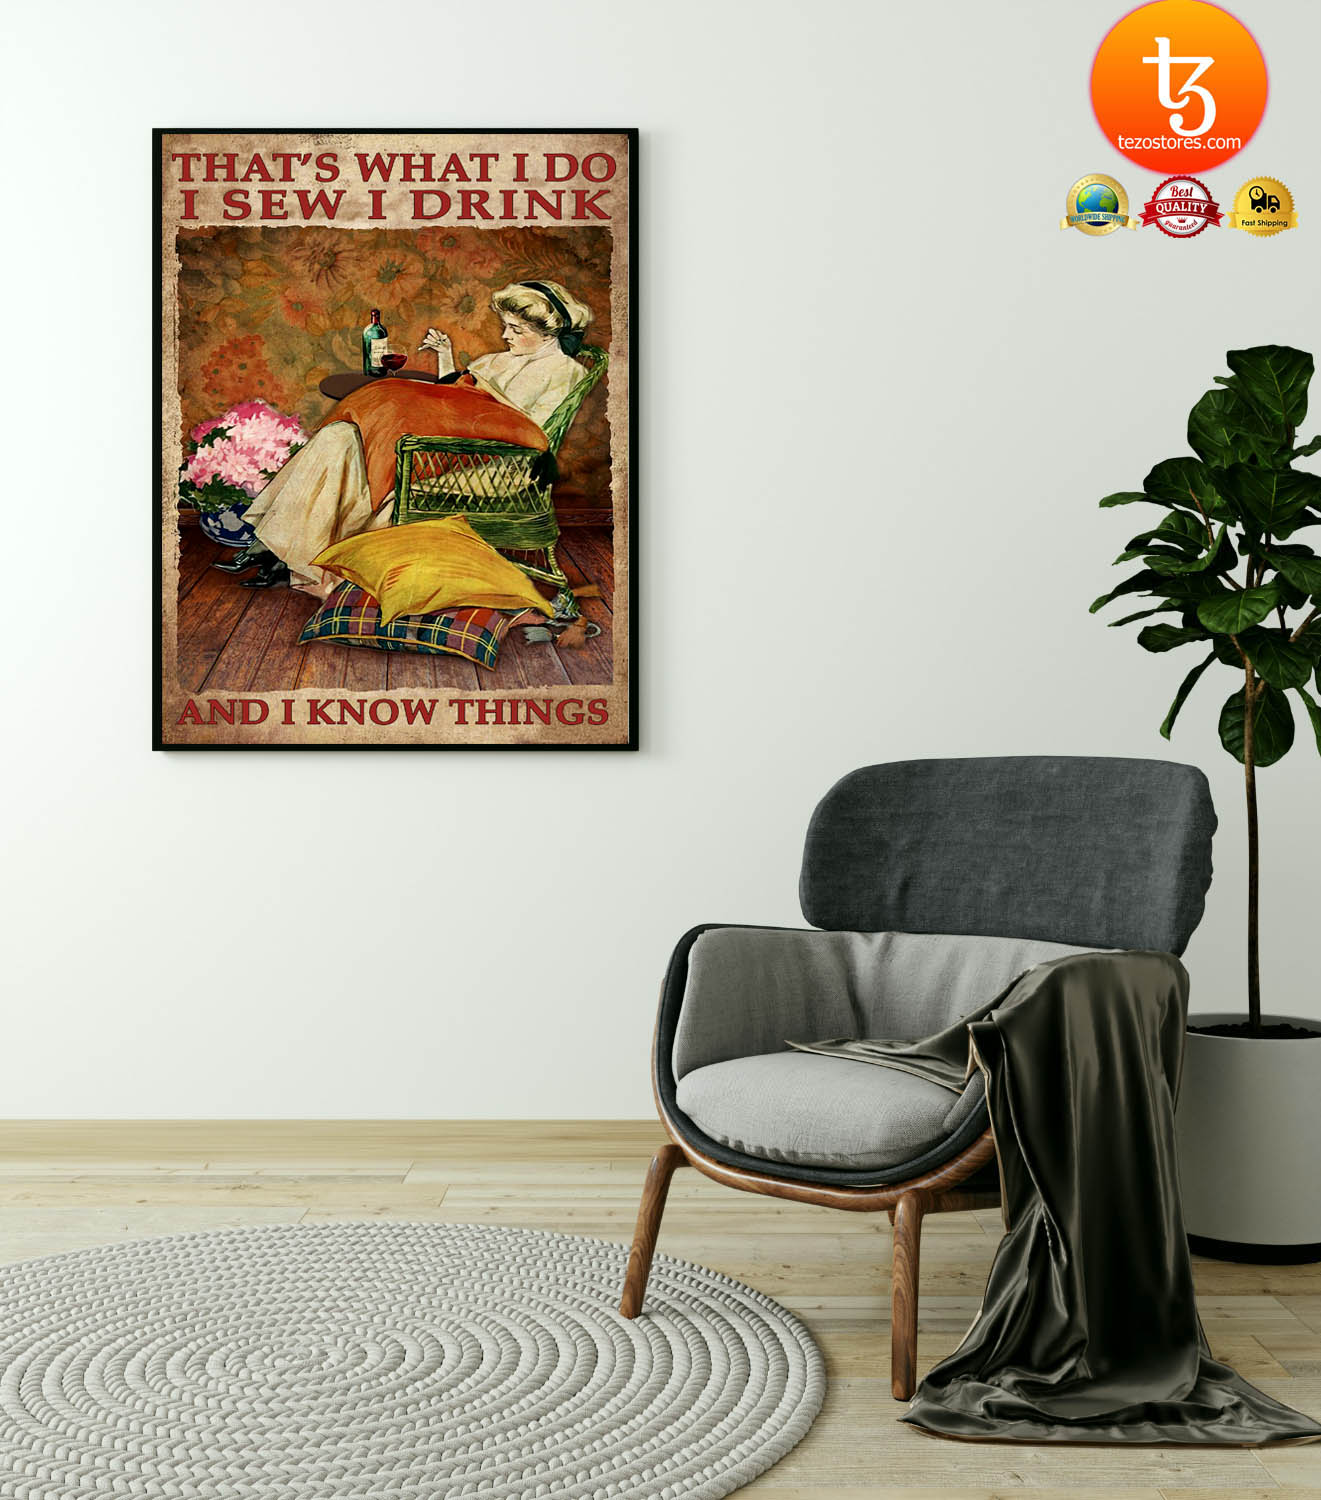 That's what I do I sew I drink and I know things poster 4